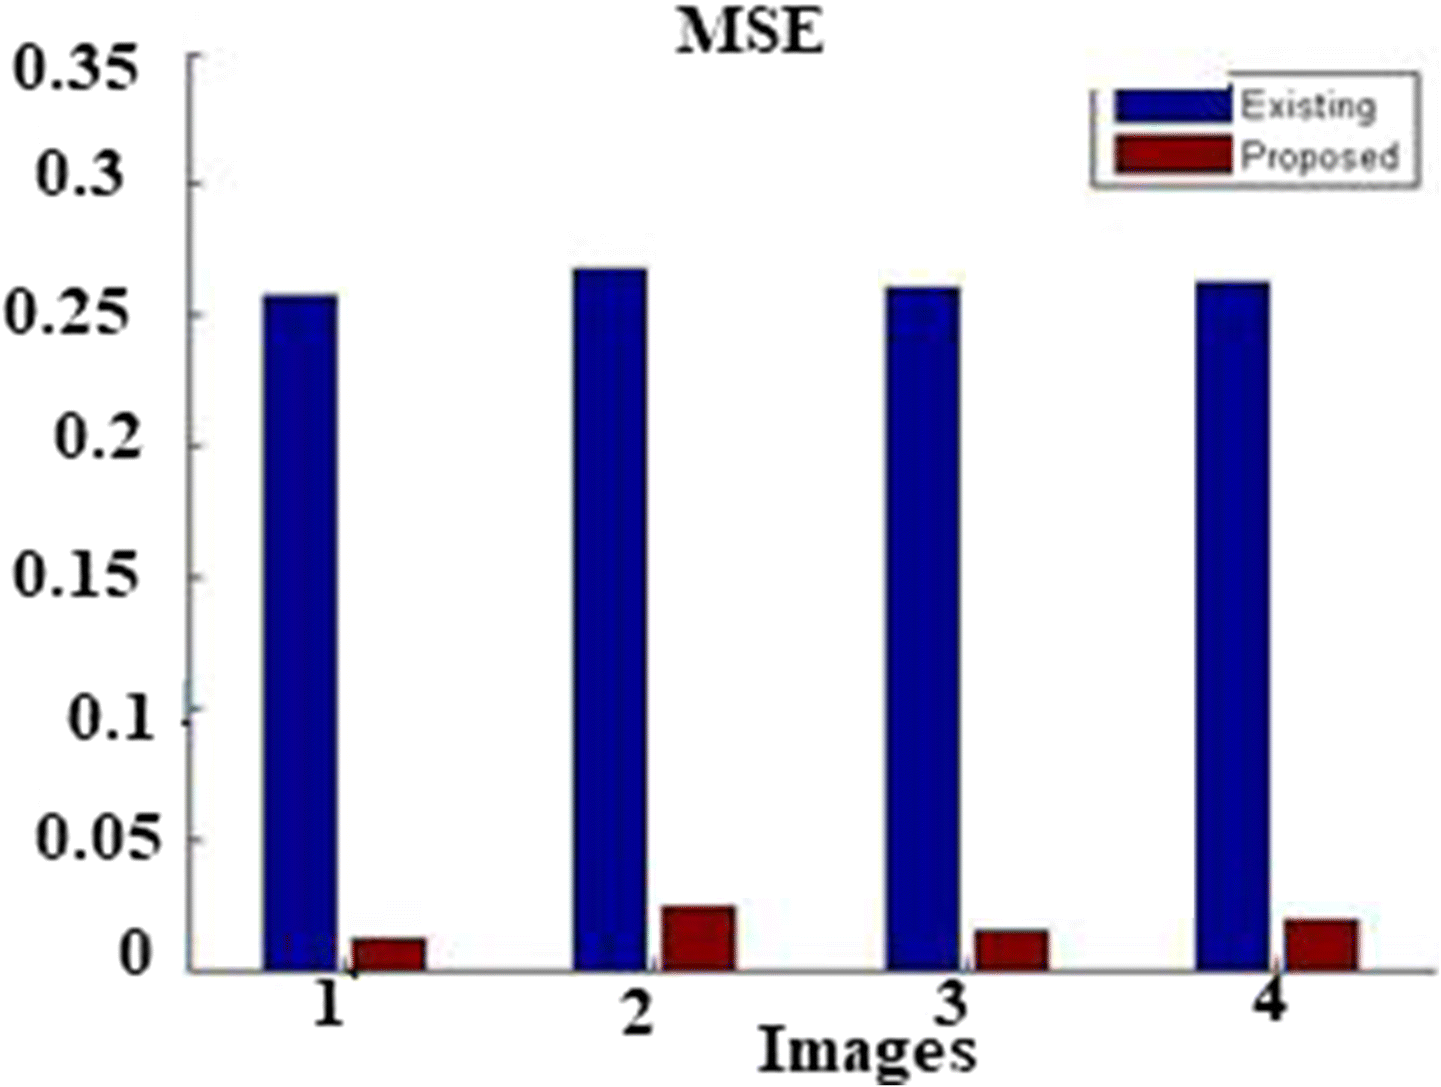 Digital image Watermark embedding and extraction using oppositional